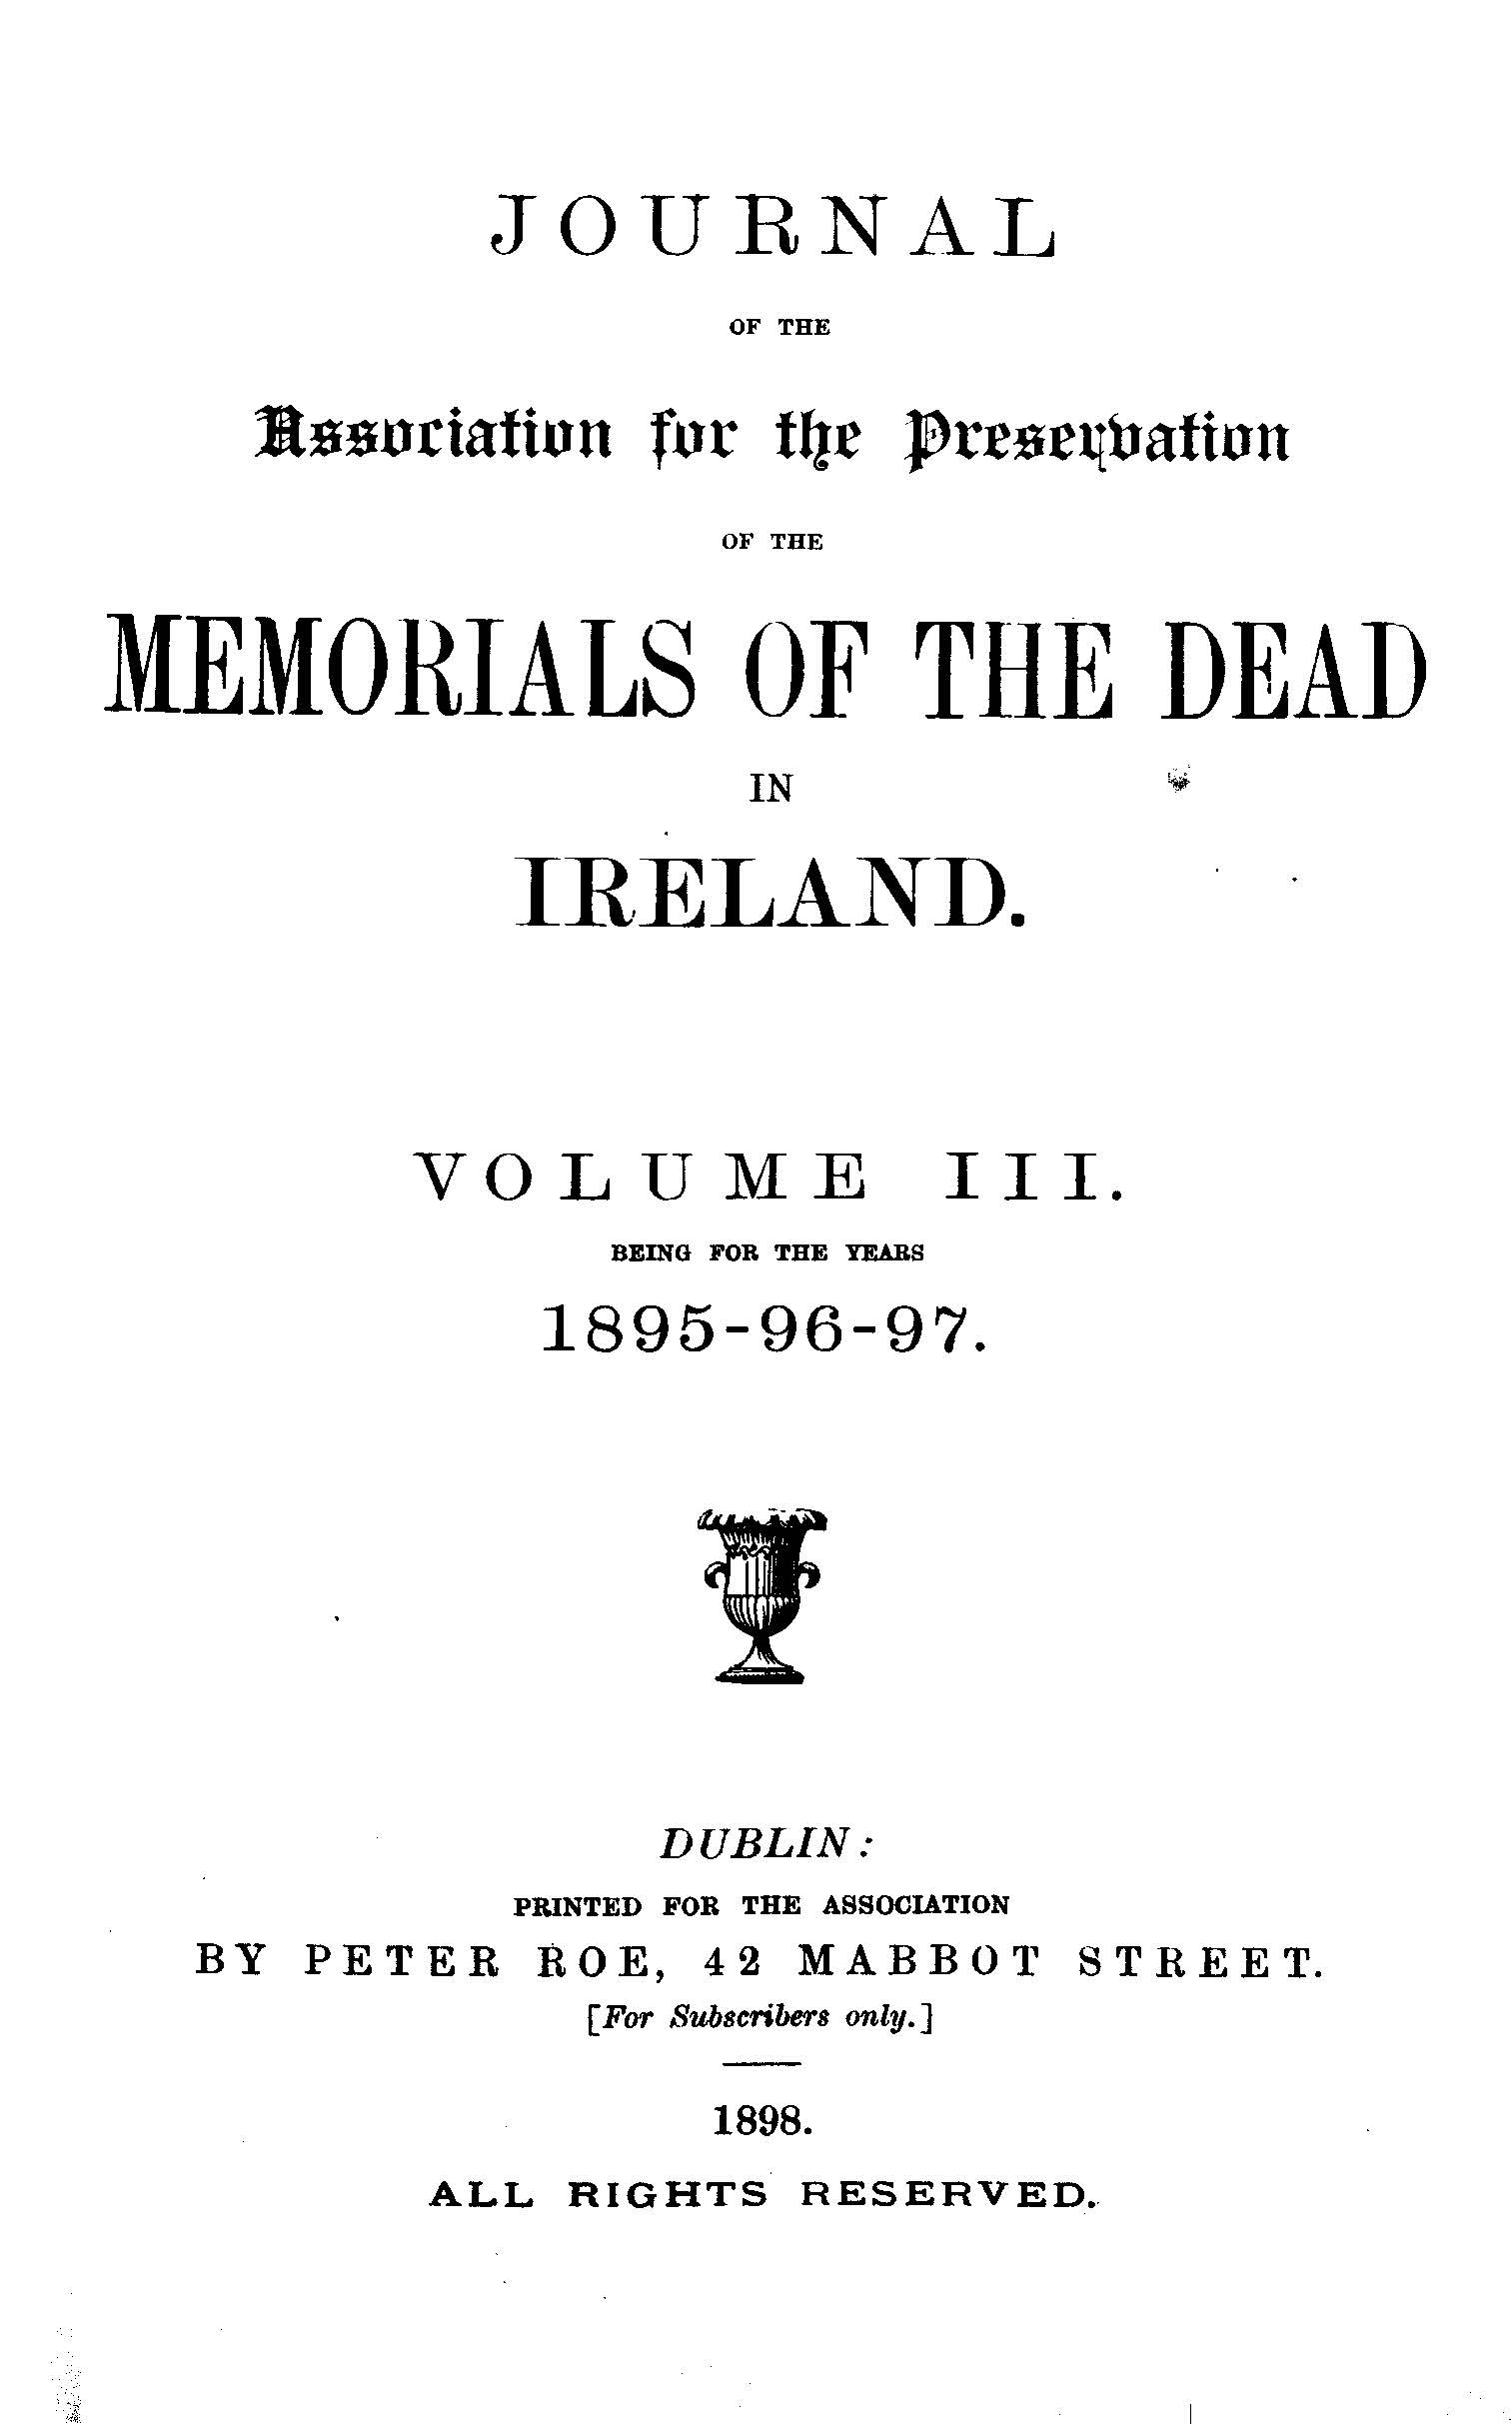 photo of Journal of the Association for the Preservation of the Memorials of the Dead. Volume III, for the years 1895-1897. 1898